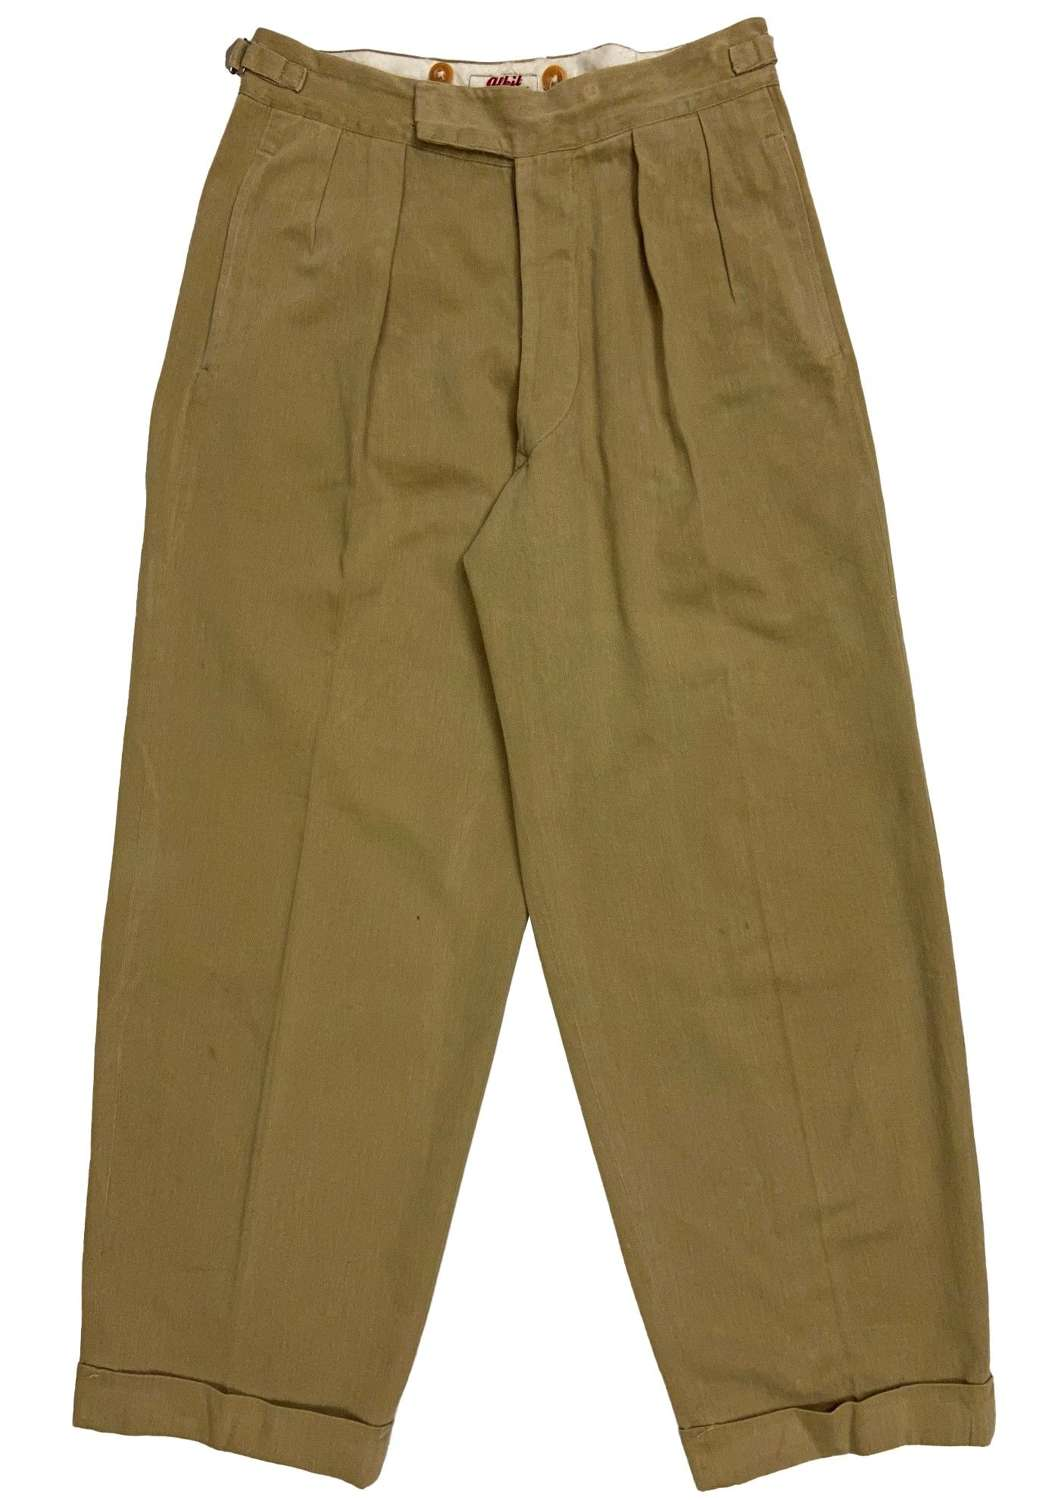 Original 1940s British Army Officers Khaki Drill Trousers by 'Alkit'